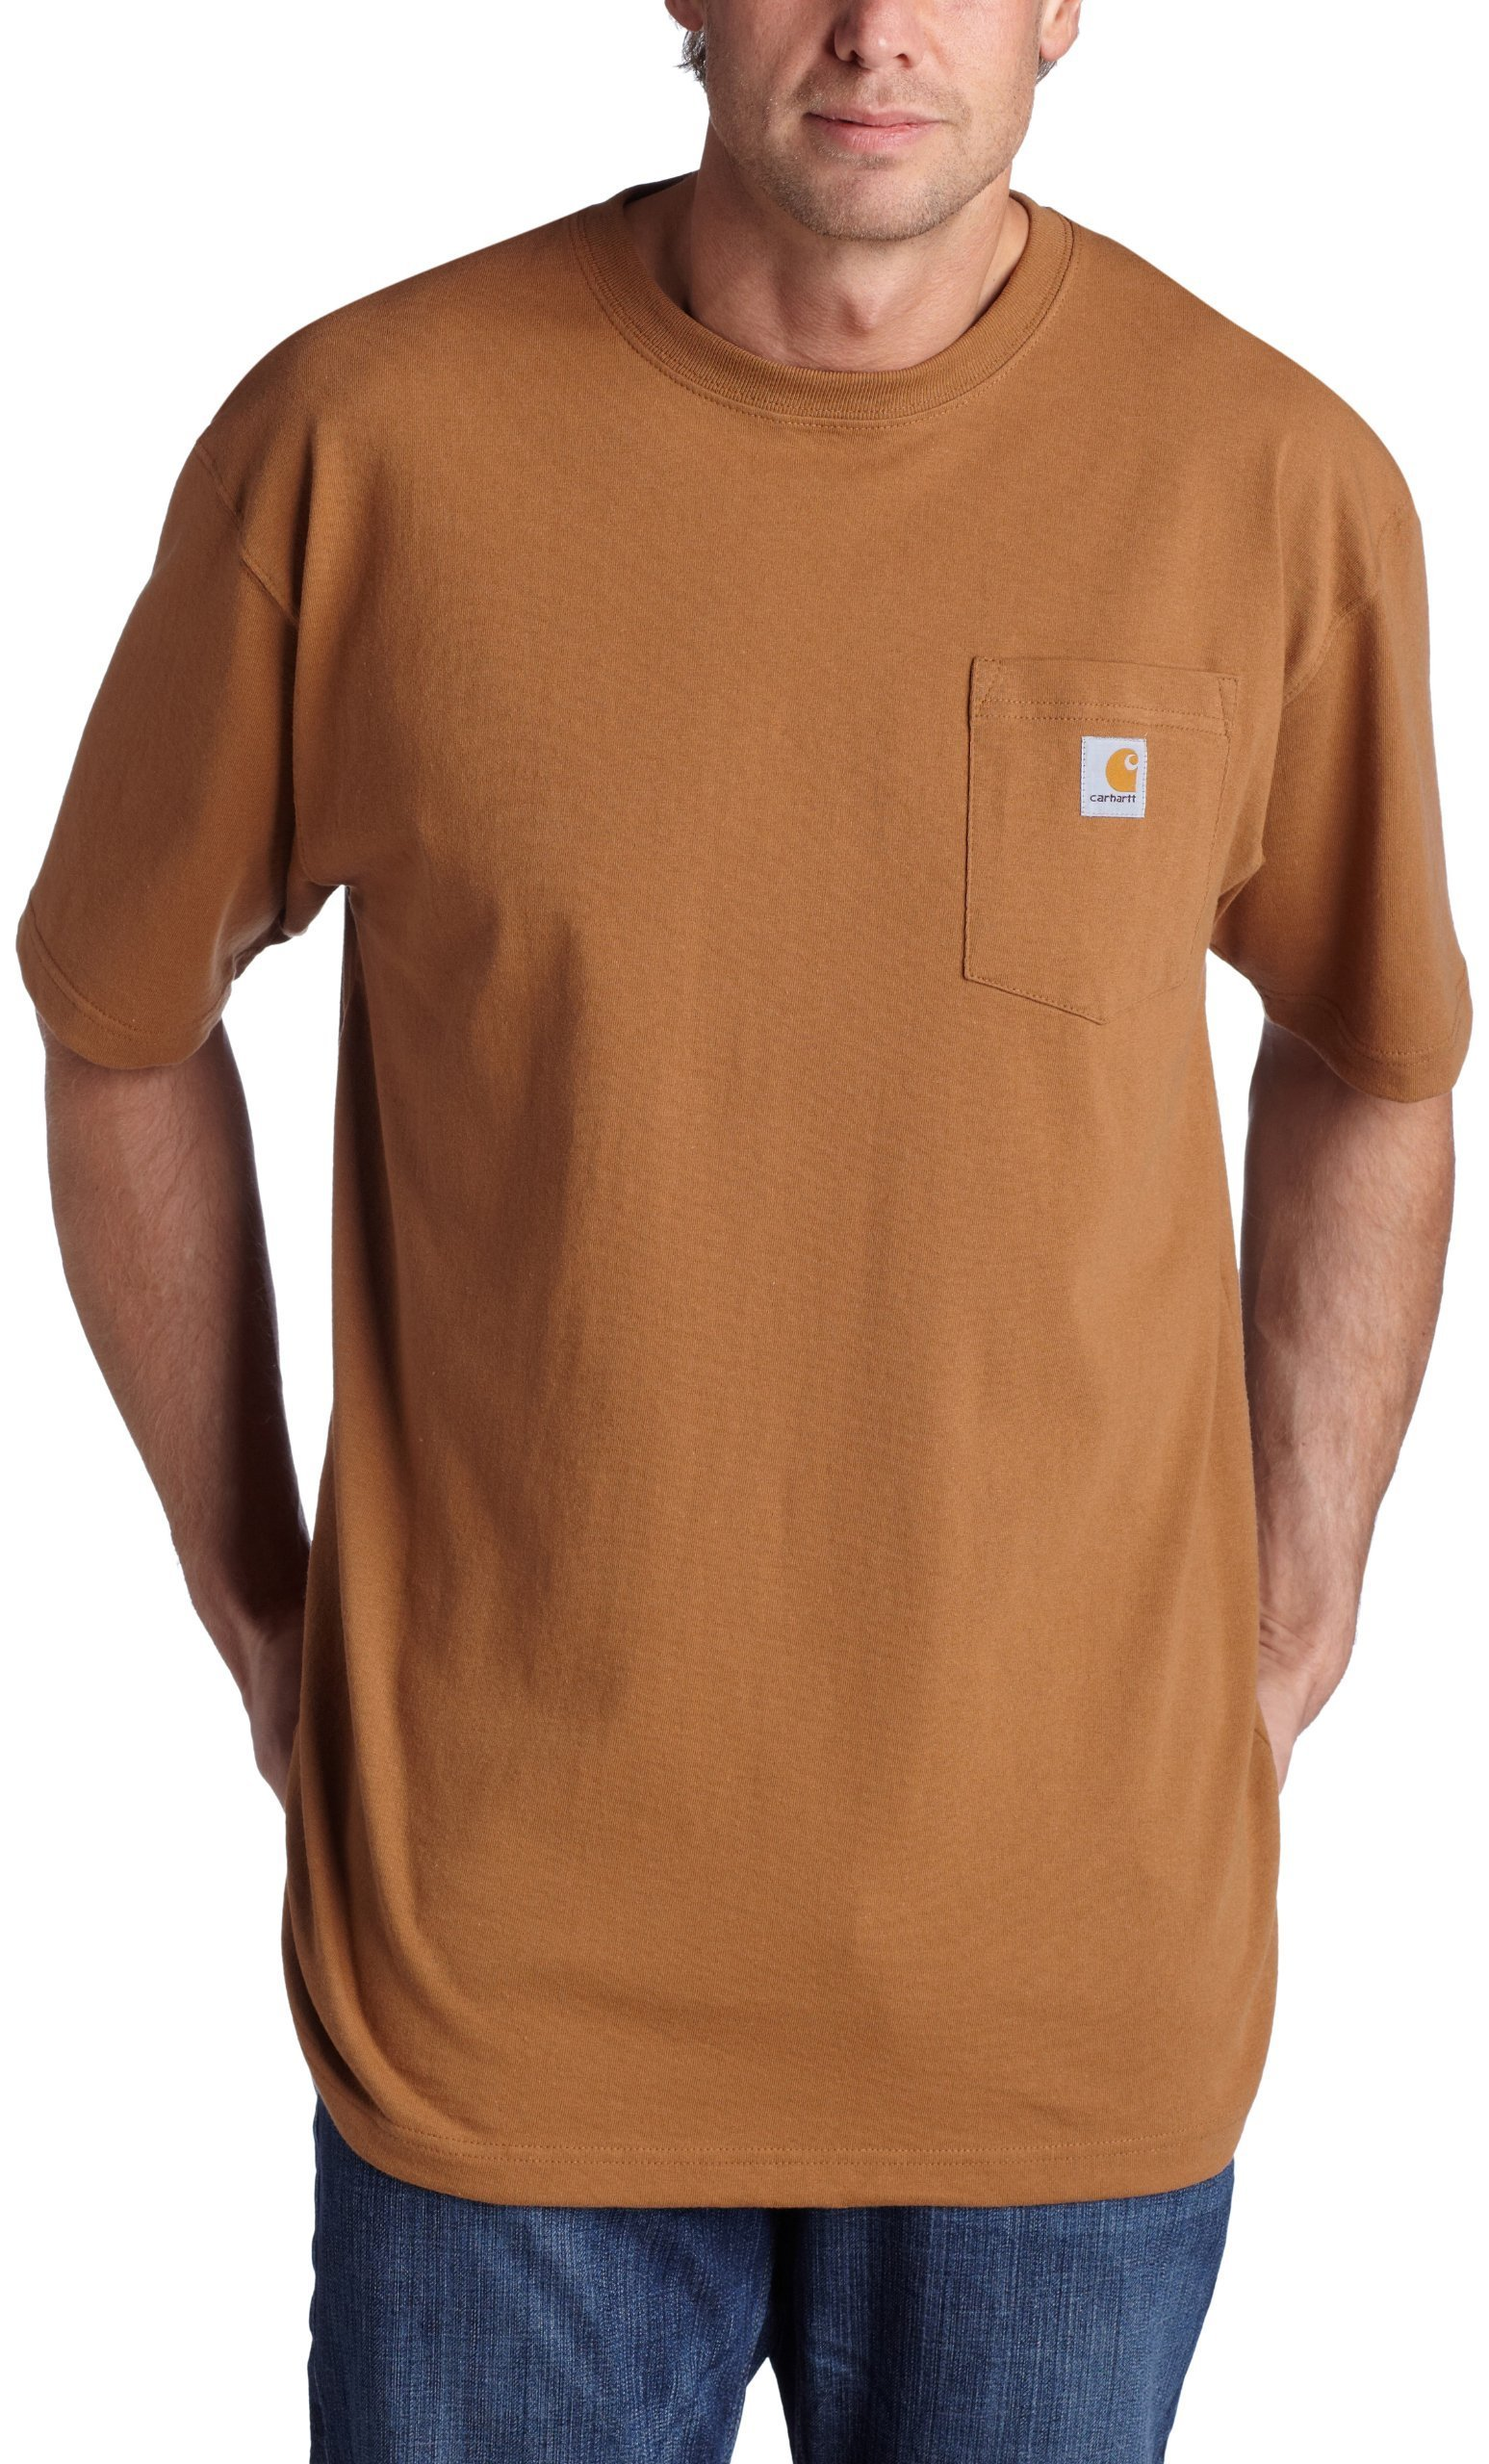 Carhartt Men's K87 Workwear Pocket Short-Sleeve T-Shirt, Brown, X-Large